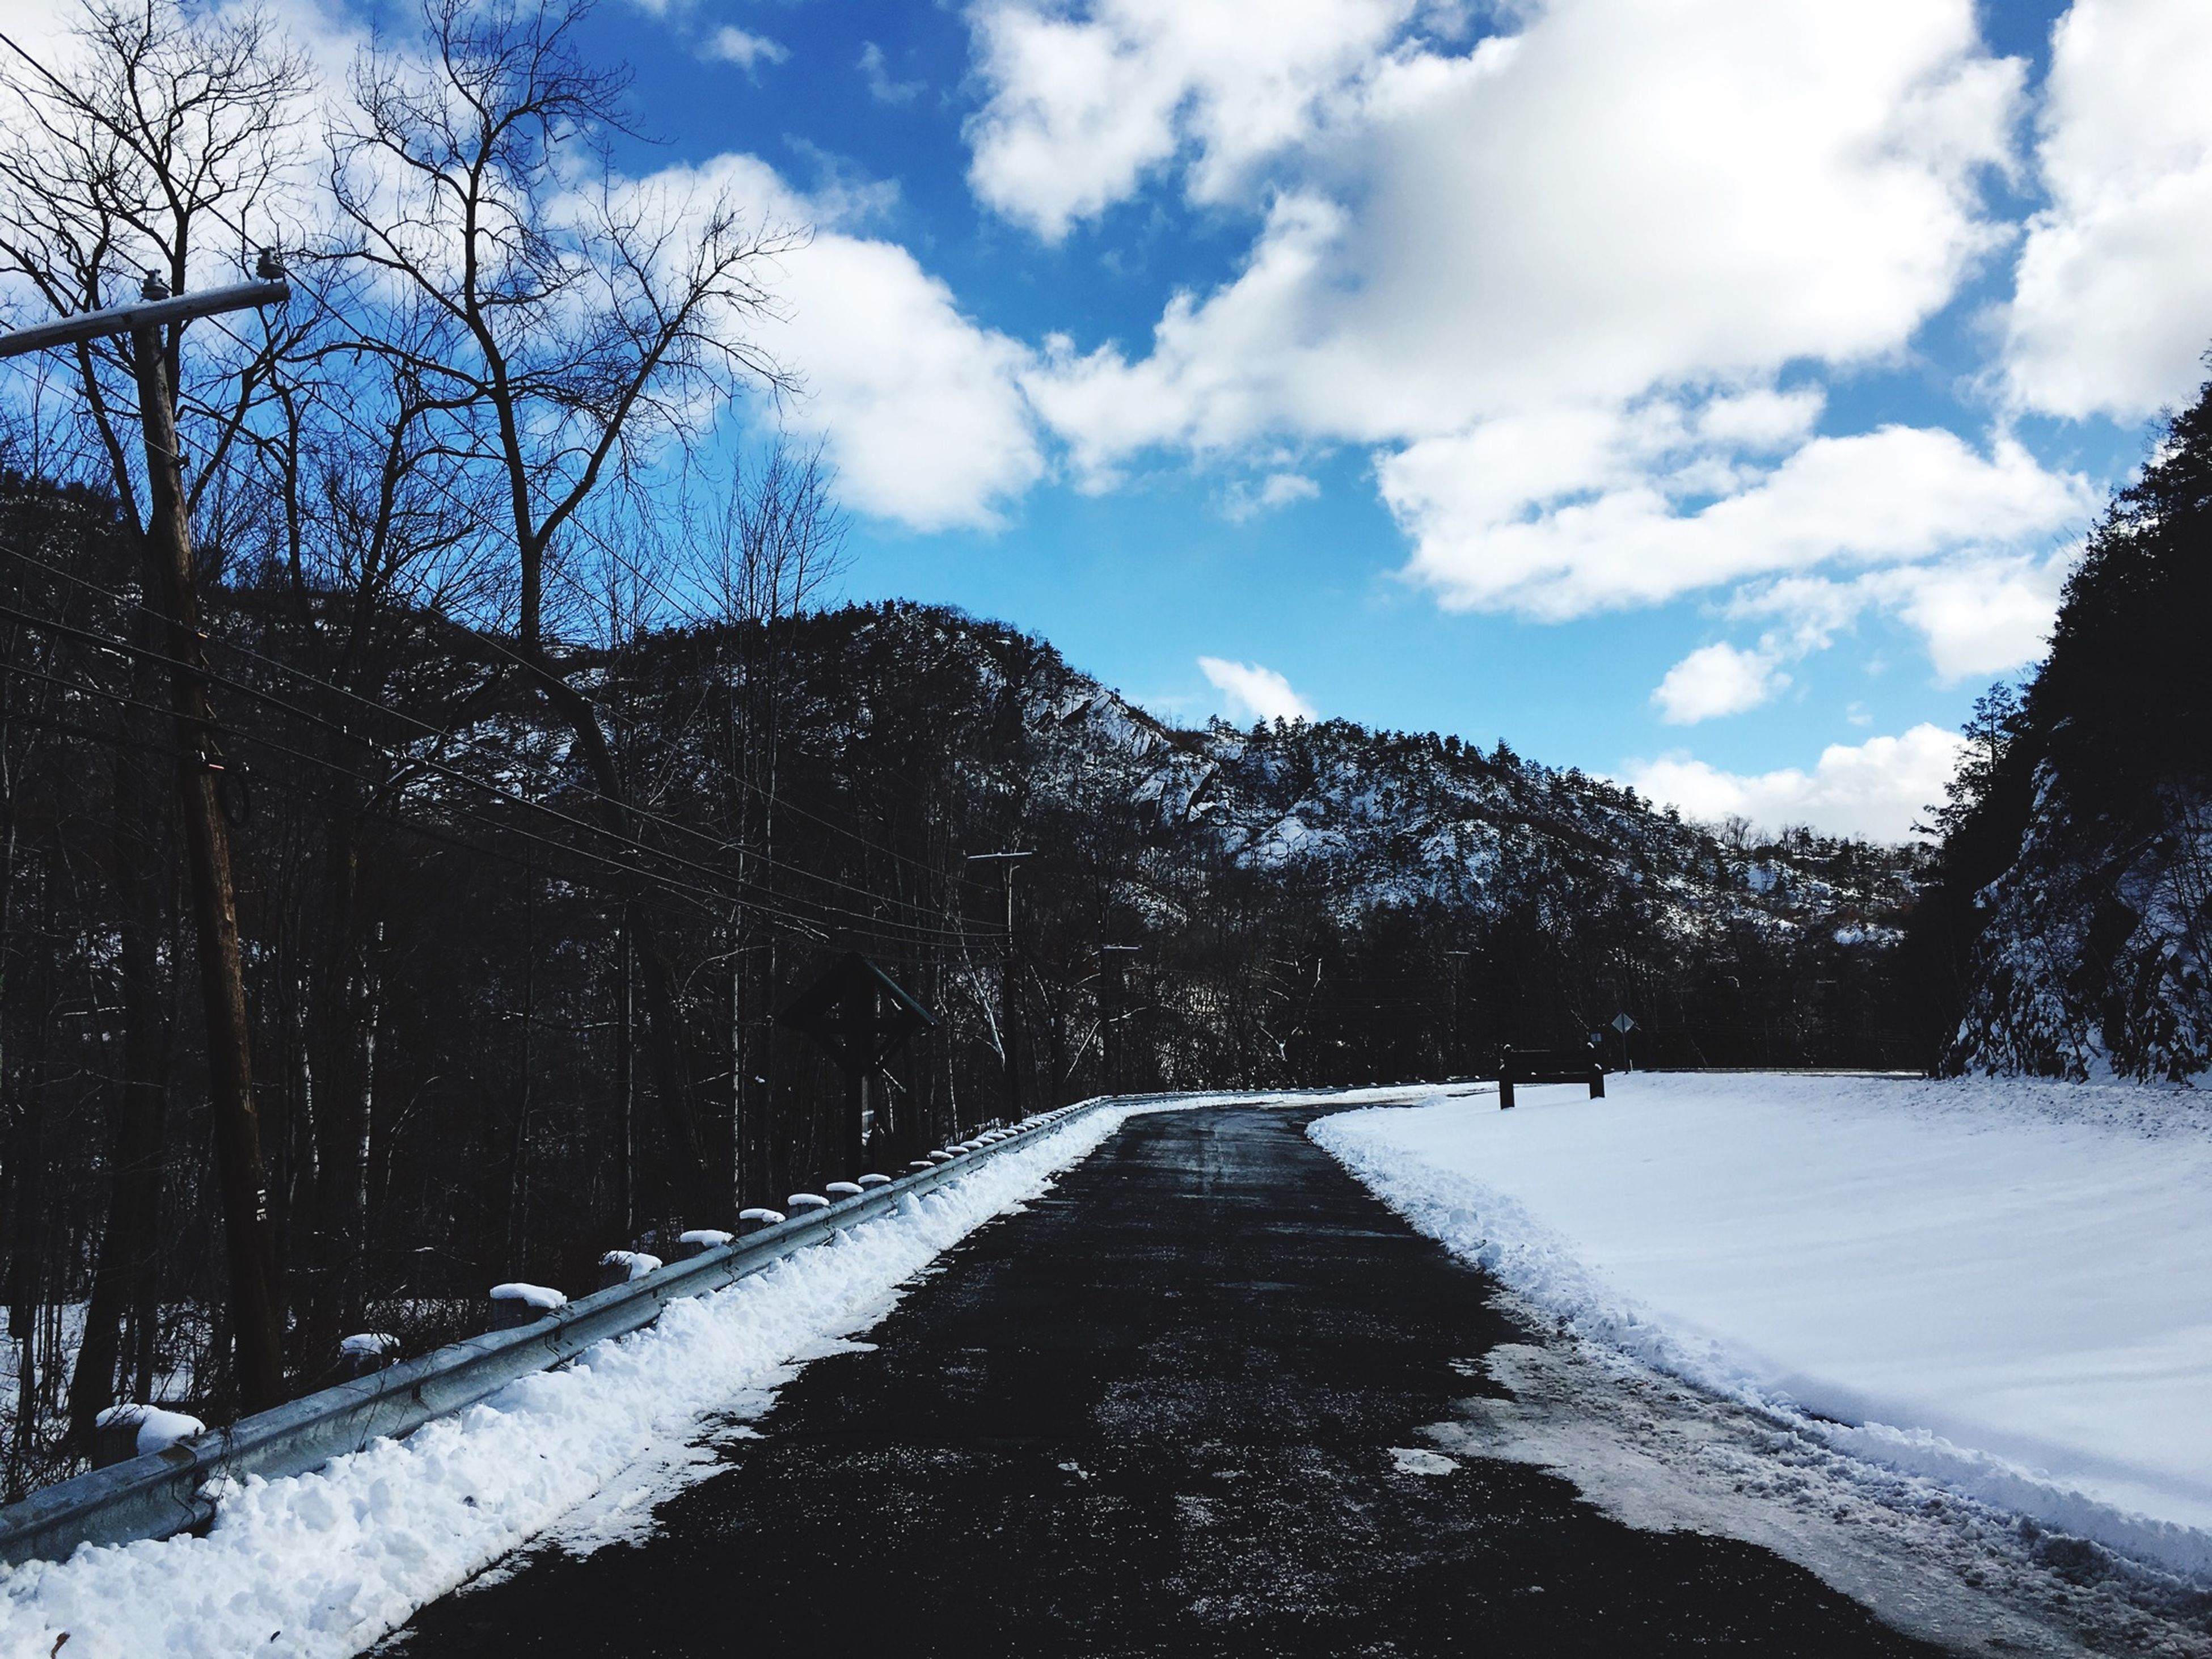 snow, winter, cold temperature, the way forward, sky, diminishing perspective, season, tree, vanishing point, weather, tranquility, tranquil scene, road, covering, mountain, nature, cloud - sky, bare tree, beauty in nature, scenics